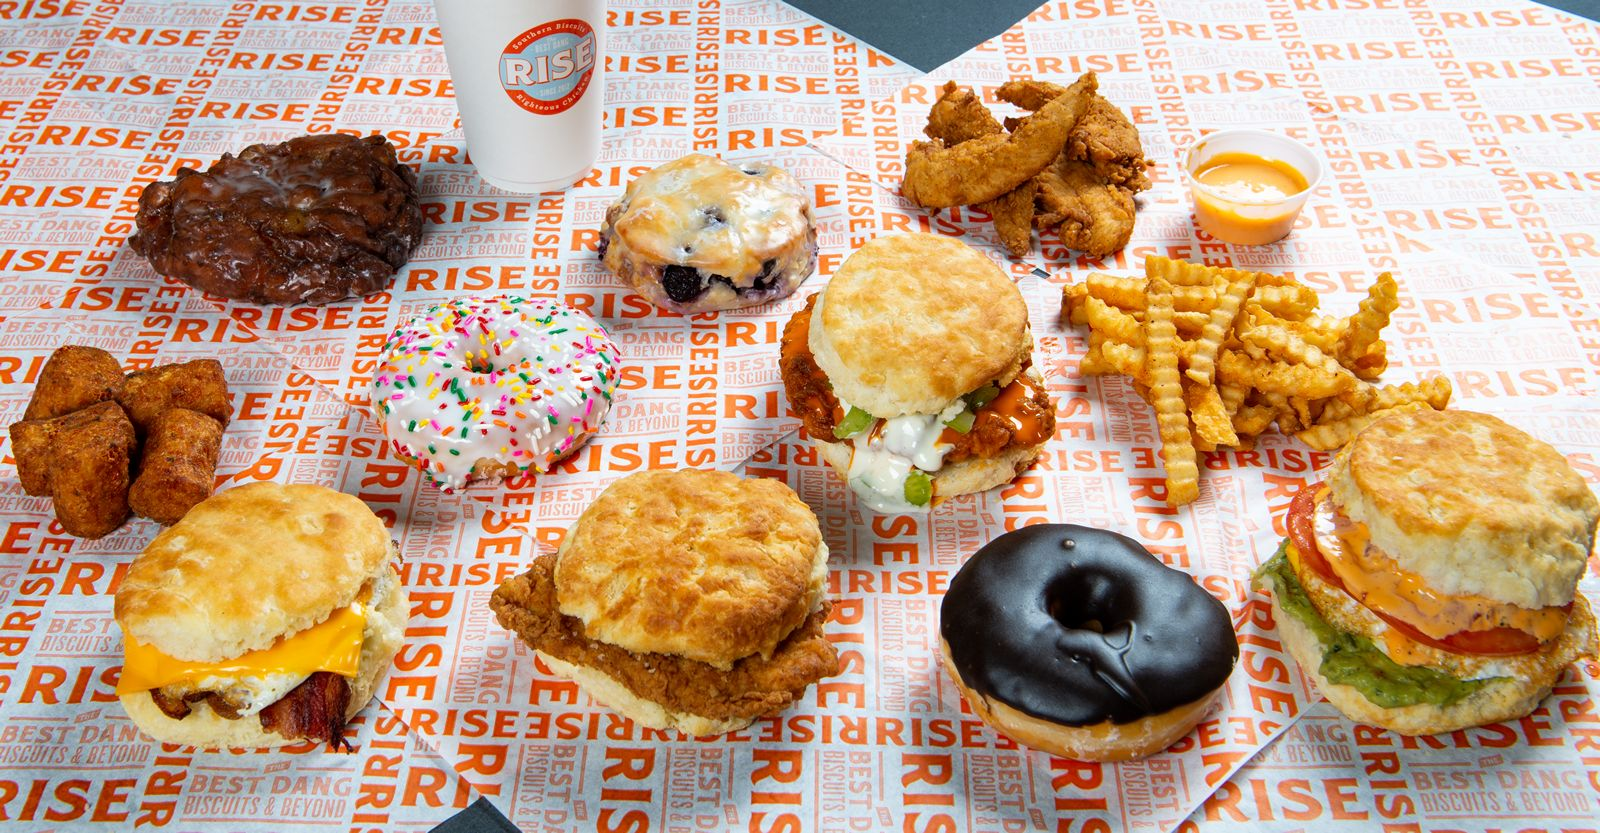 Best Dang Biscuit Franchise Inks Tennessee Area Representative Deal